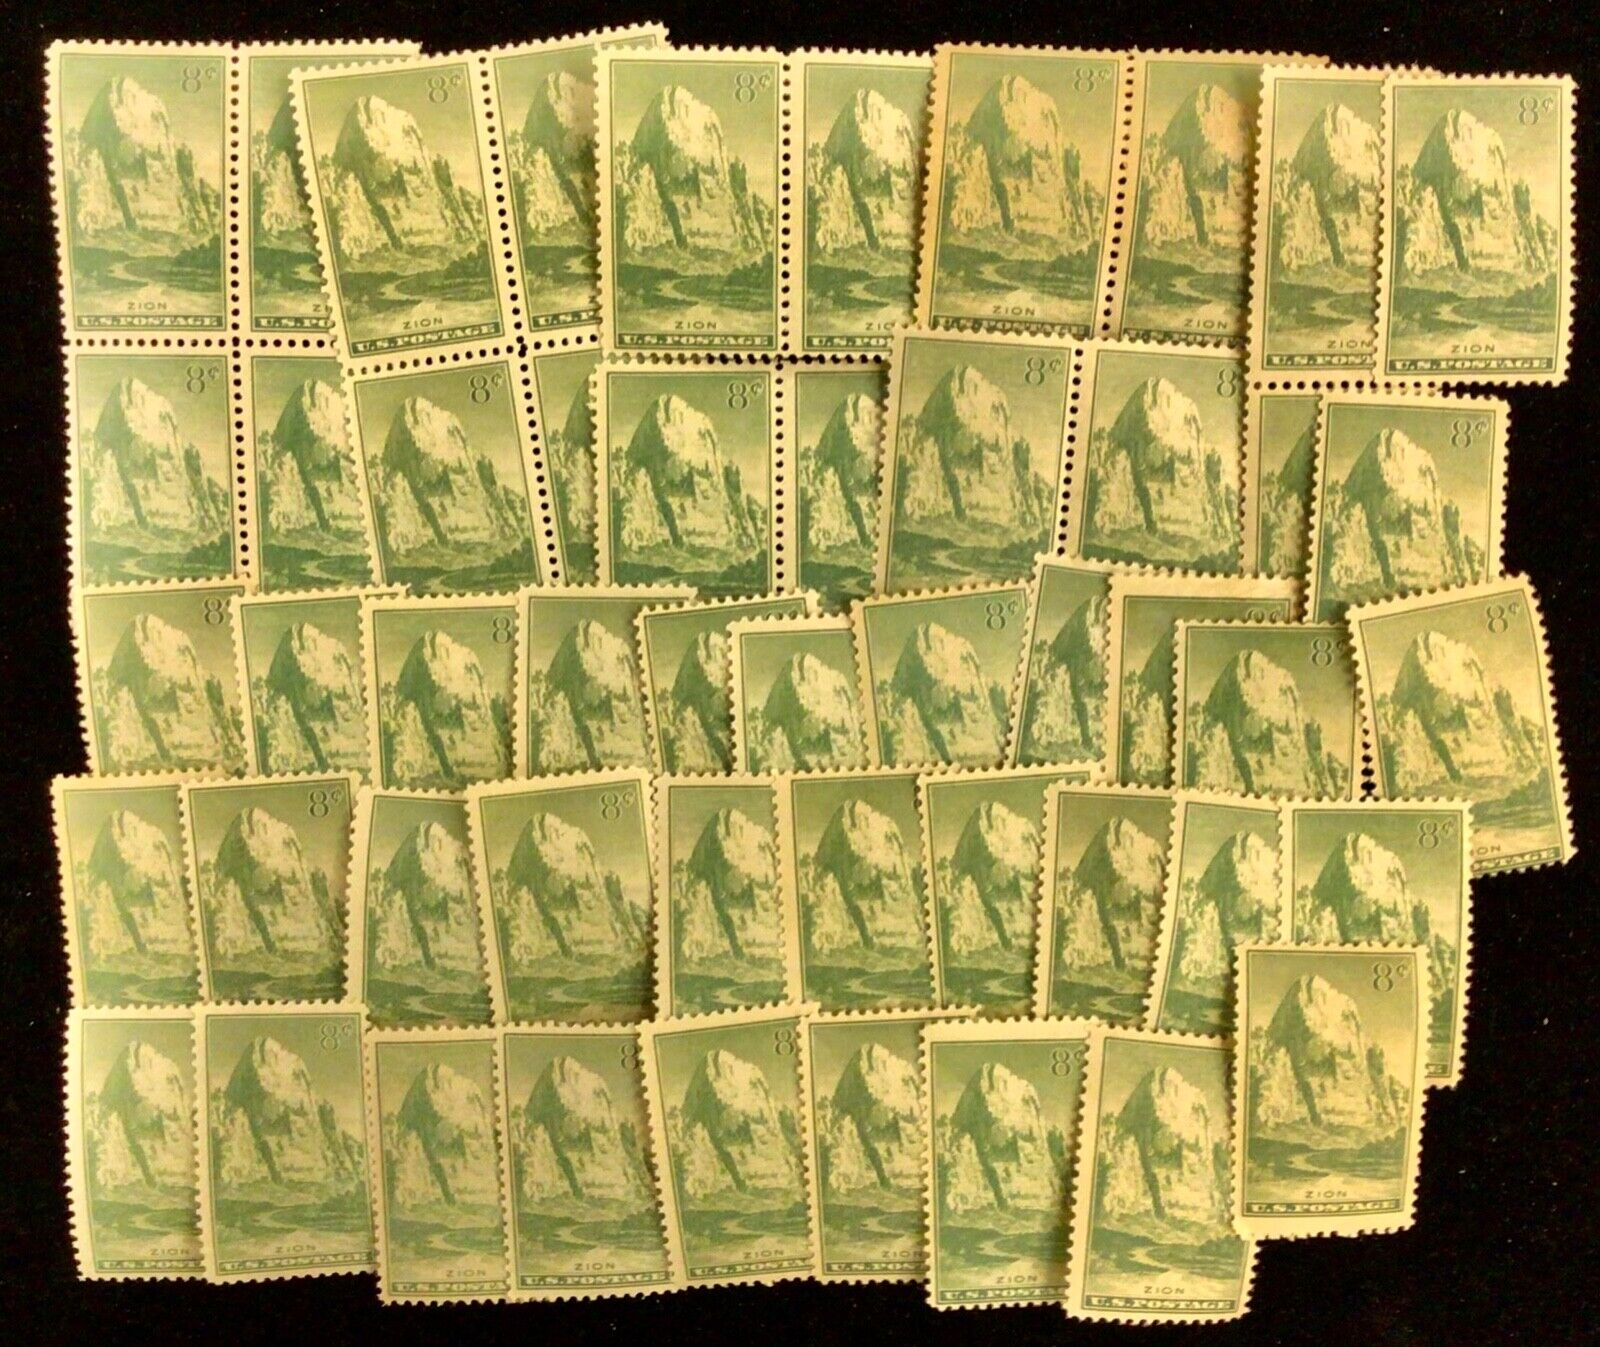 747 Zion Park  National Parks Year Issue 50 MNH 8 c stamps   1934